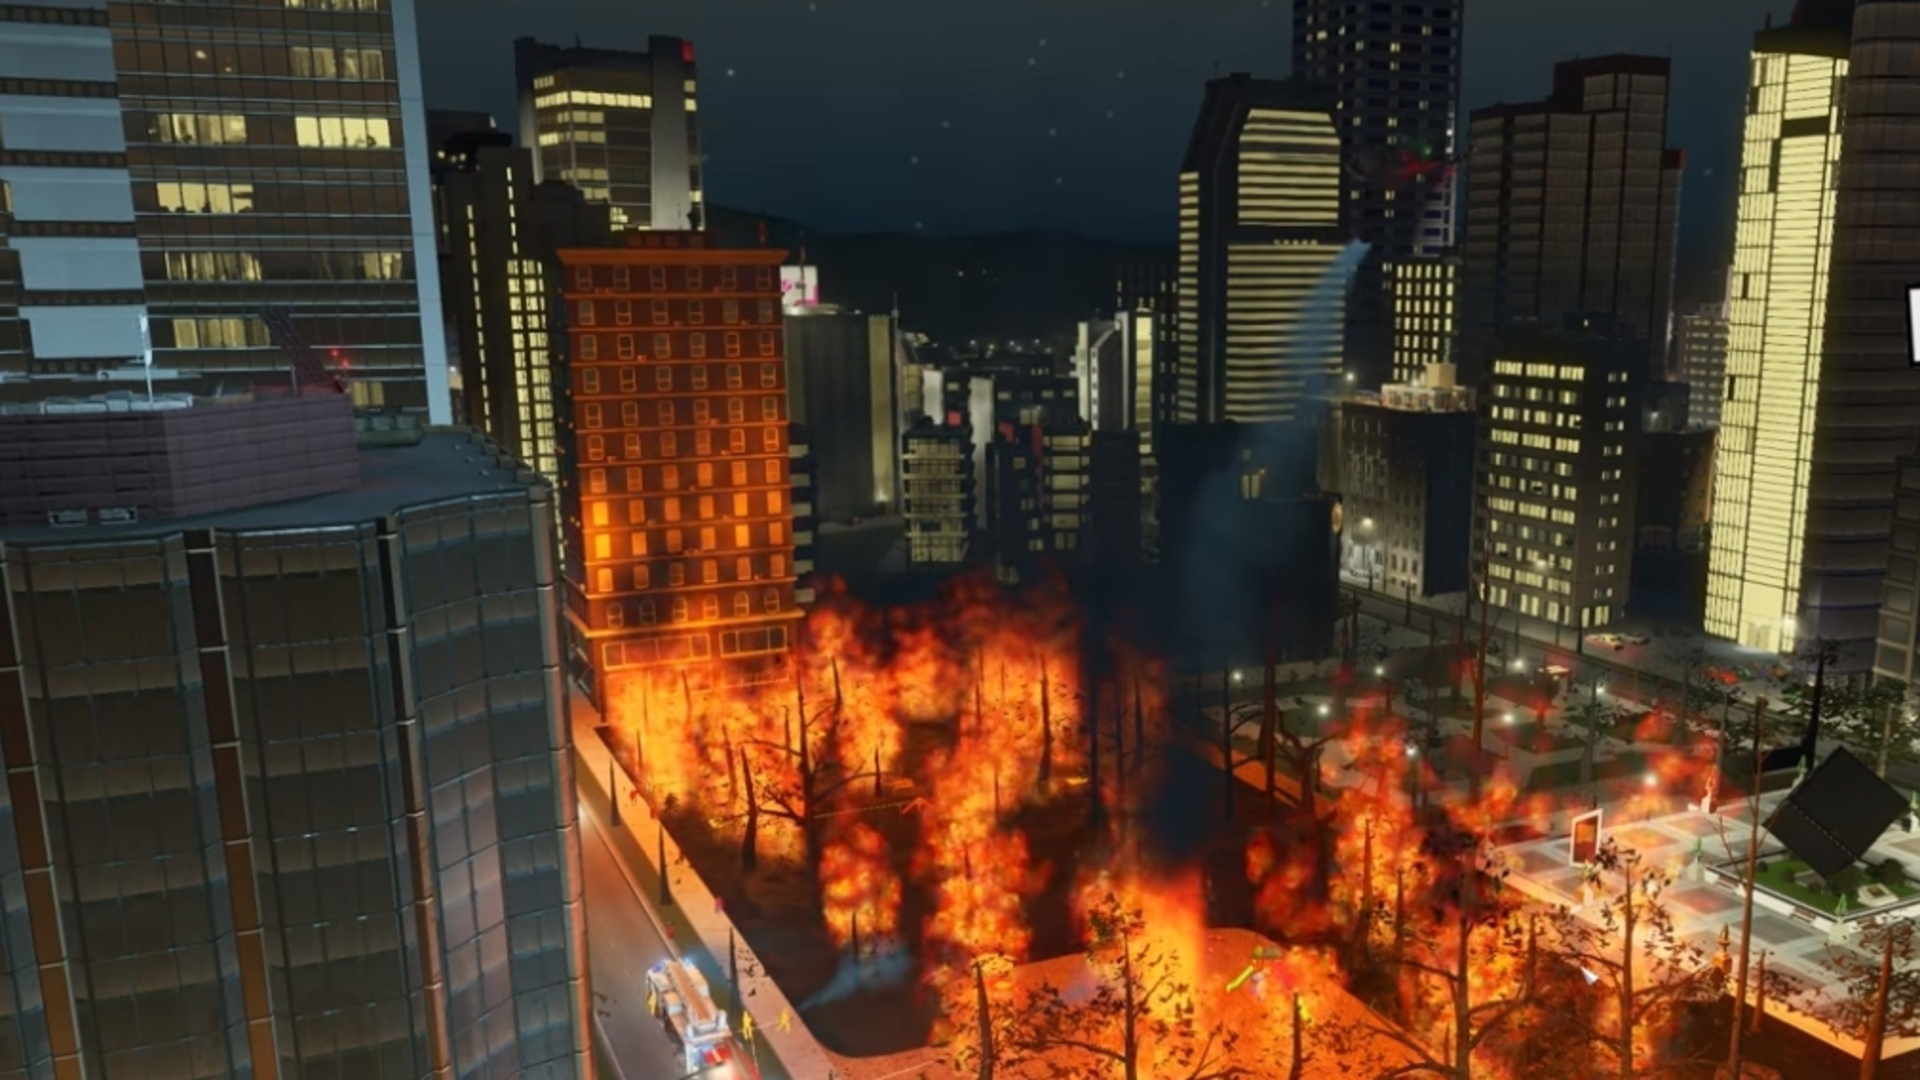 cities skylines for switch has some disappointing performance